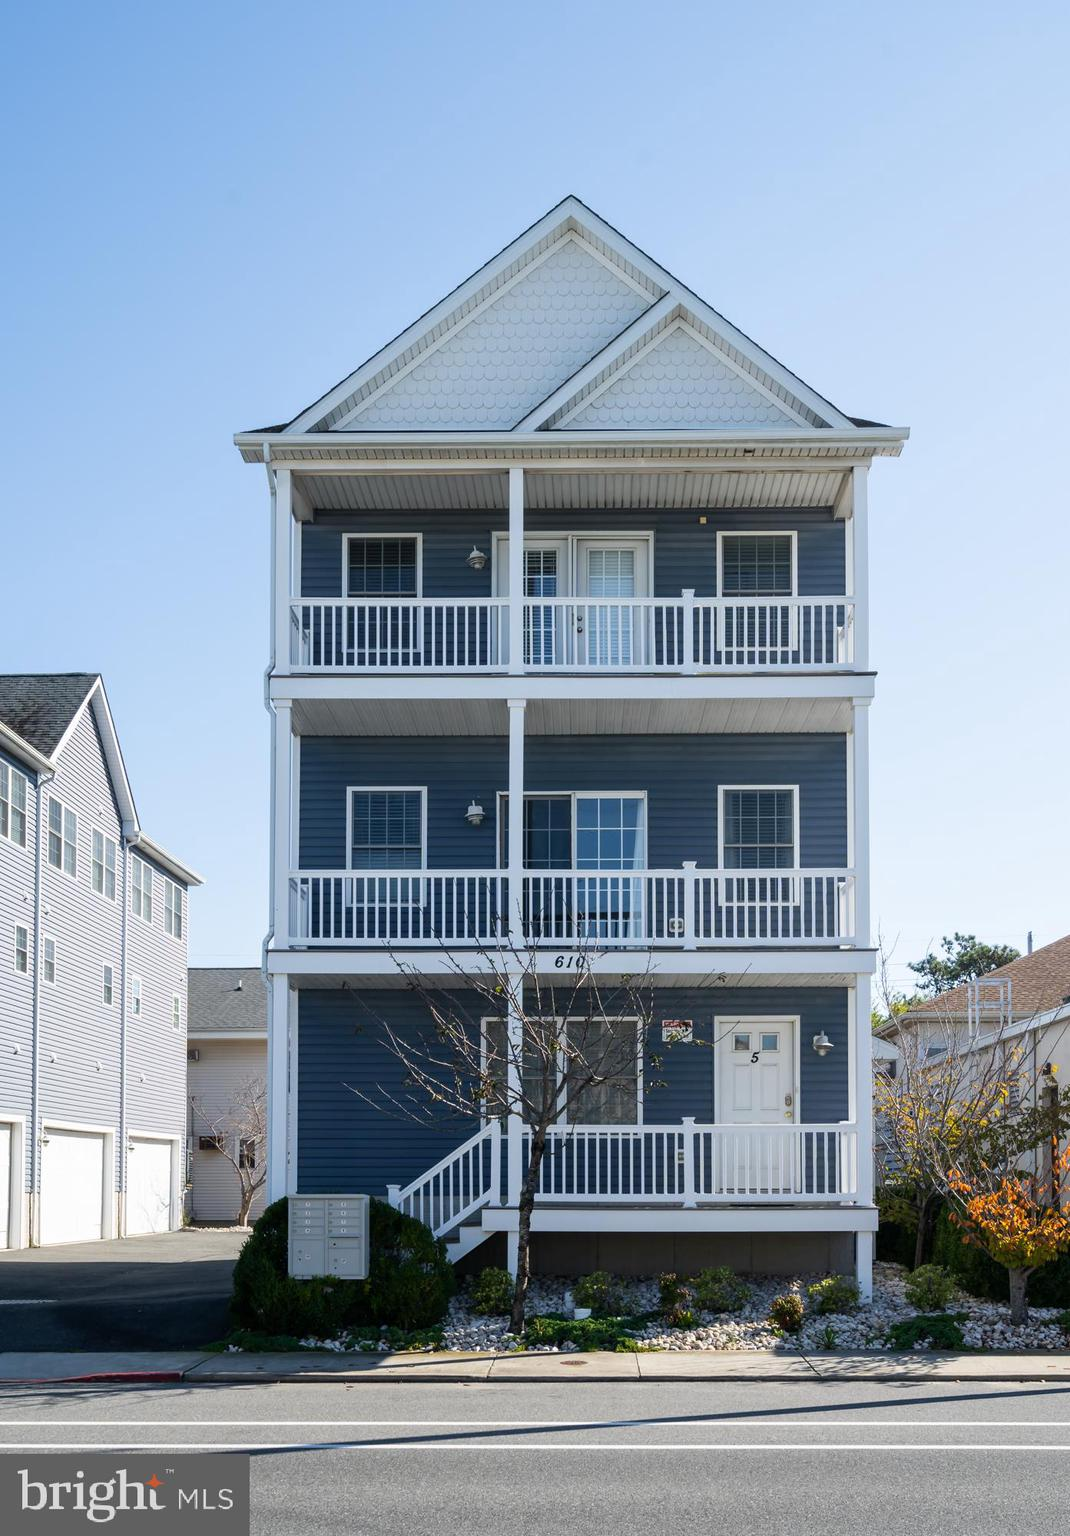 Spacious single family home located just blocks from Ocean City, Maryland's Famous Boardwalk and Beach. This 3 story home features a bright and open floor plan with vaulted ceilings, two master suites, and multi-level decking. Relax by the South Island Villas community pool as this complex has only 5 units. There is plenty of room for your vehicles with a 2 car rear entry garage, along with off-street parking. Enjoy two free fishing piers, as well as the Downtown Recreation Complex along the bay where you find a ballfield, playground, basketball courts, tennis courts, and the Ocean Bowl Skate Park. Restaurants, shopping, amusements, and the White Marlin Open fishing tournament are all within a short distance. This home has never been rented. The projected rental income is $40,000 + per year.